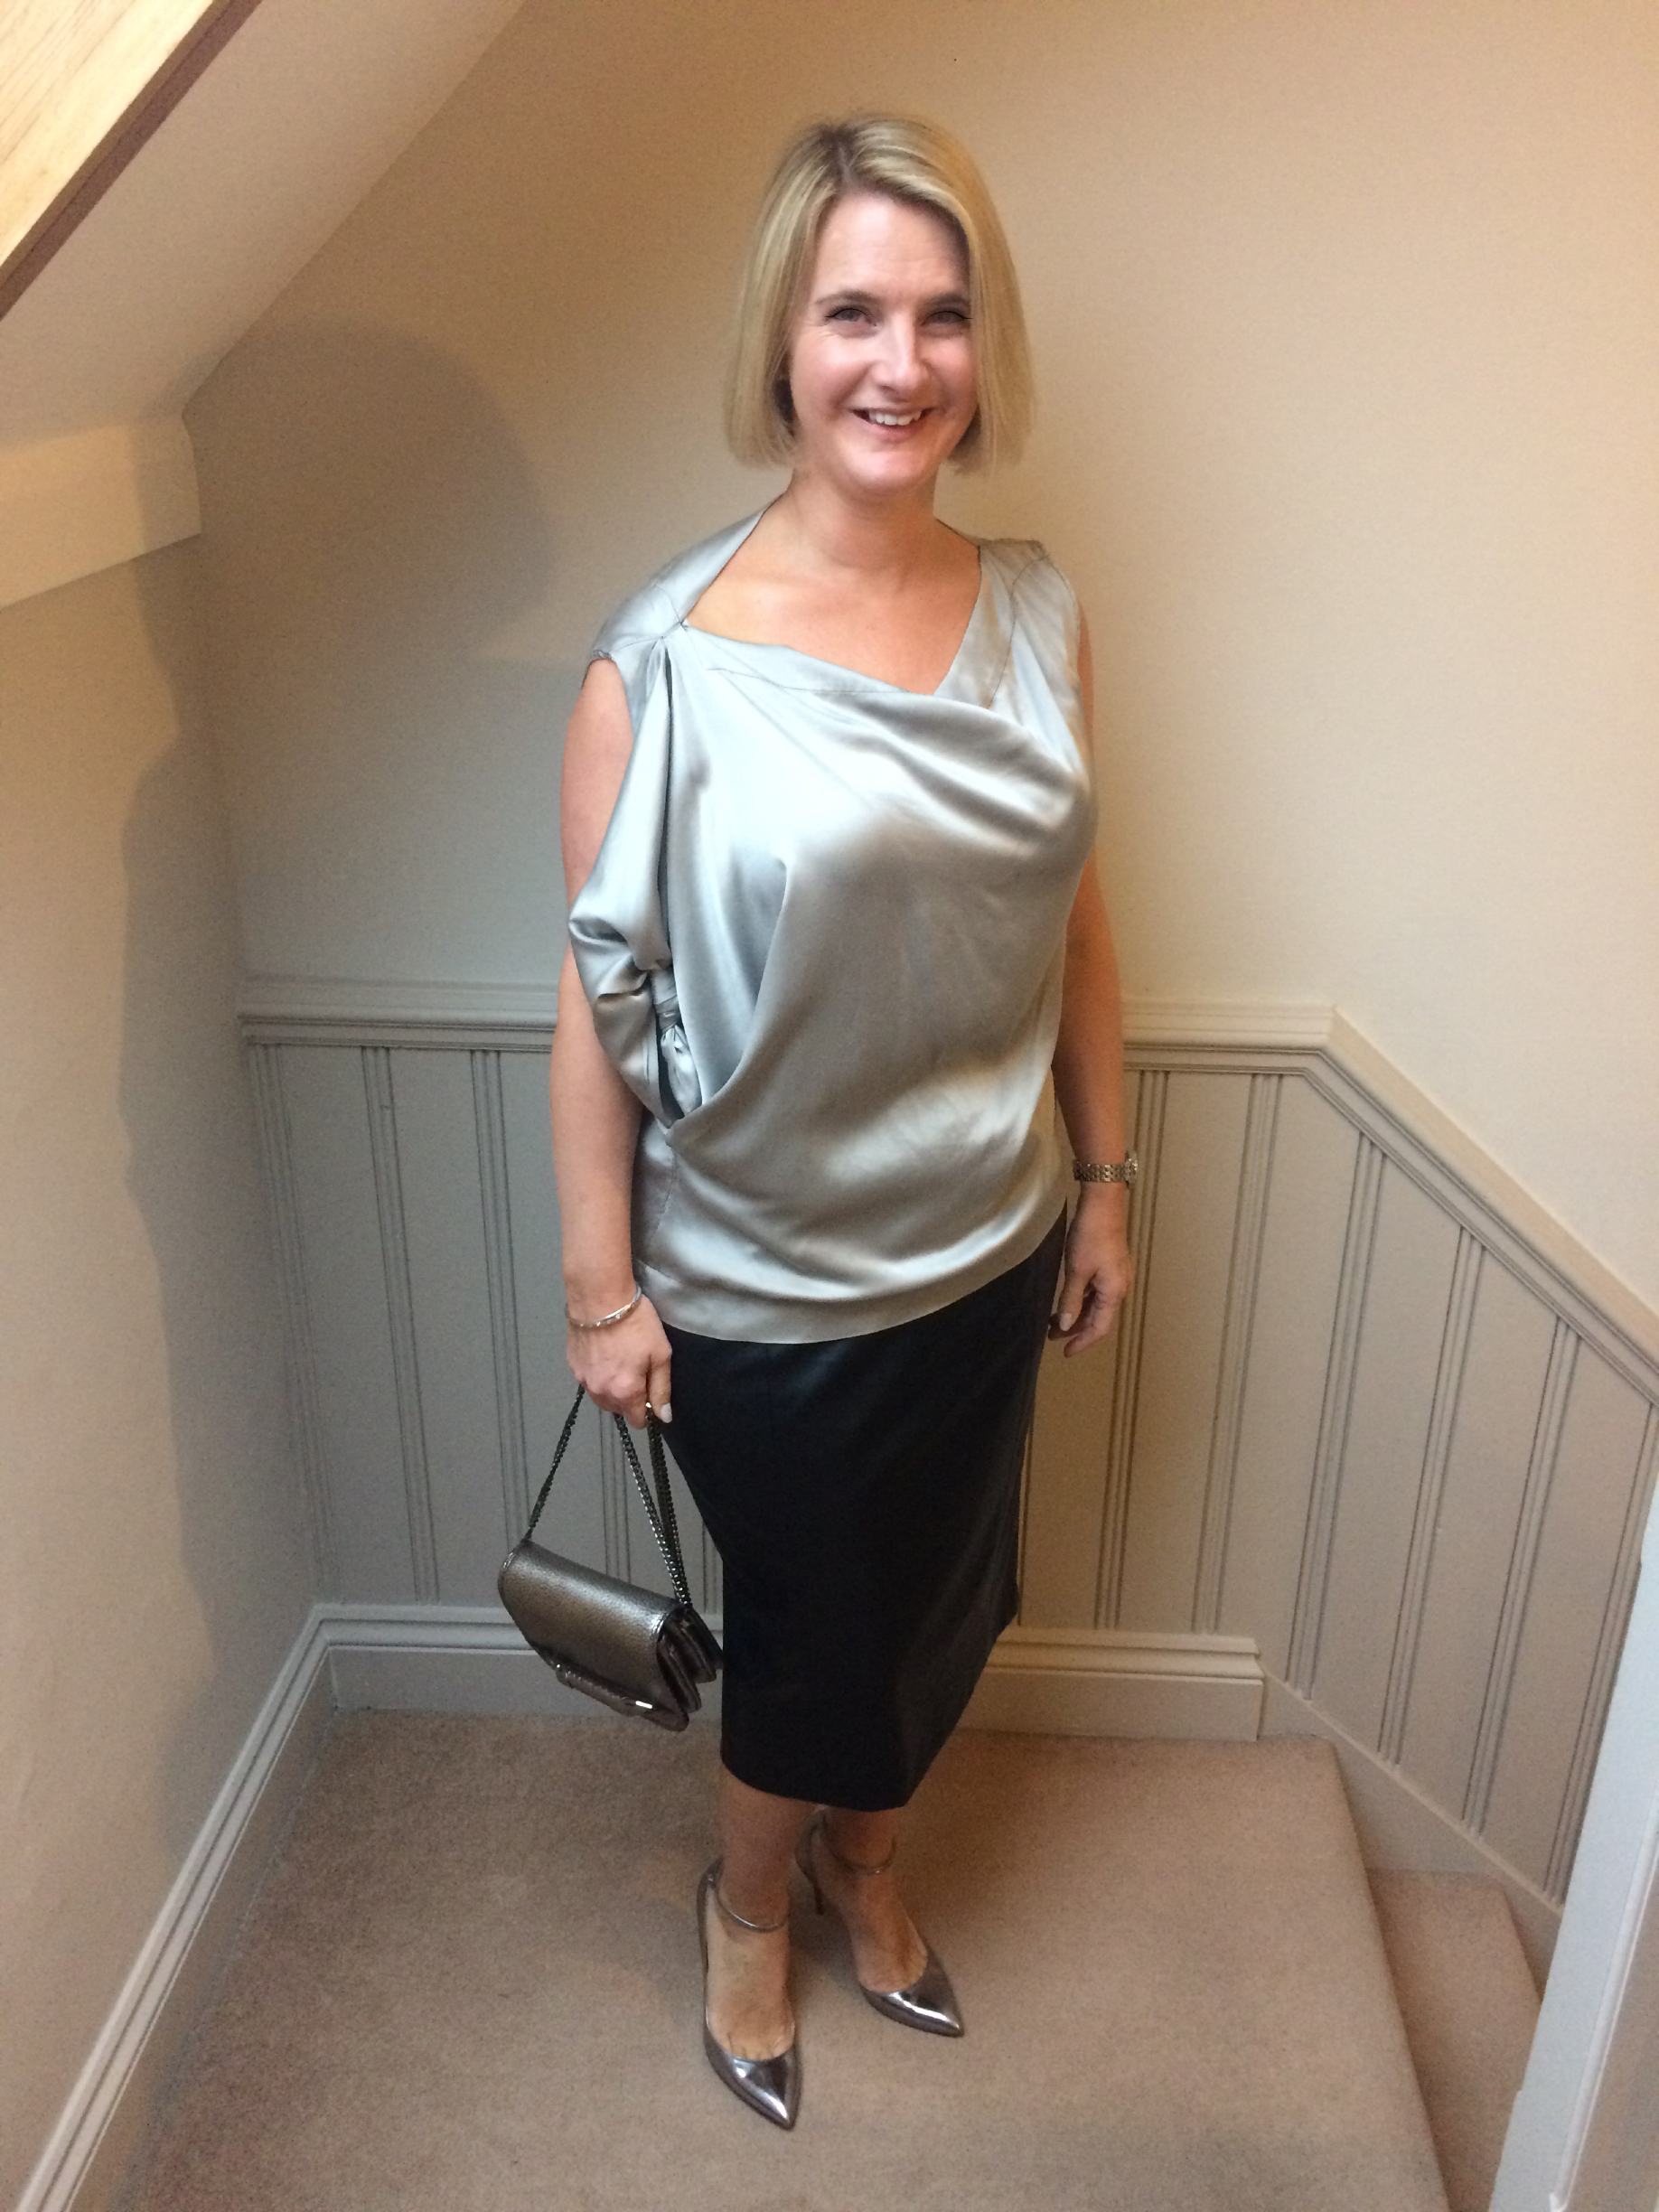 Top from Vivienne Westwood, Skirt from Marks and Spencer, Shoes and Bag from Jimmy Choo